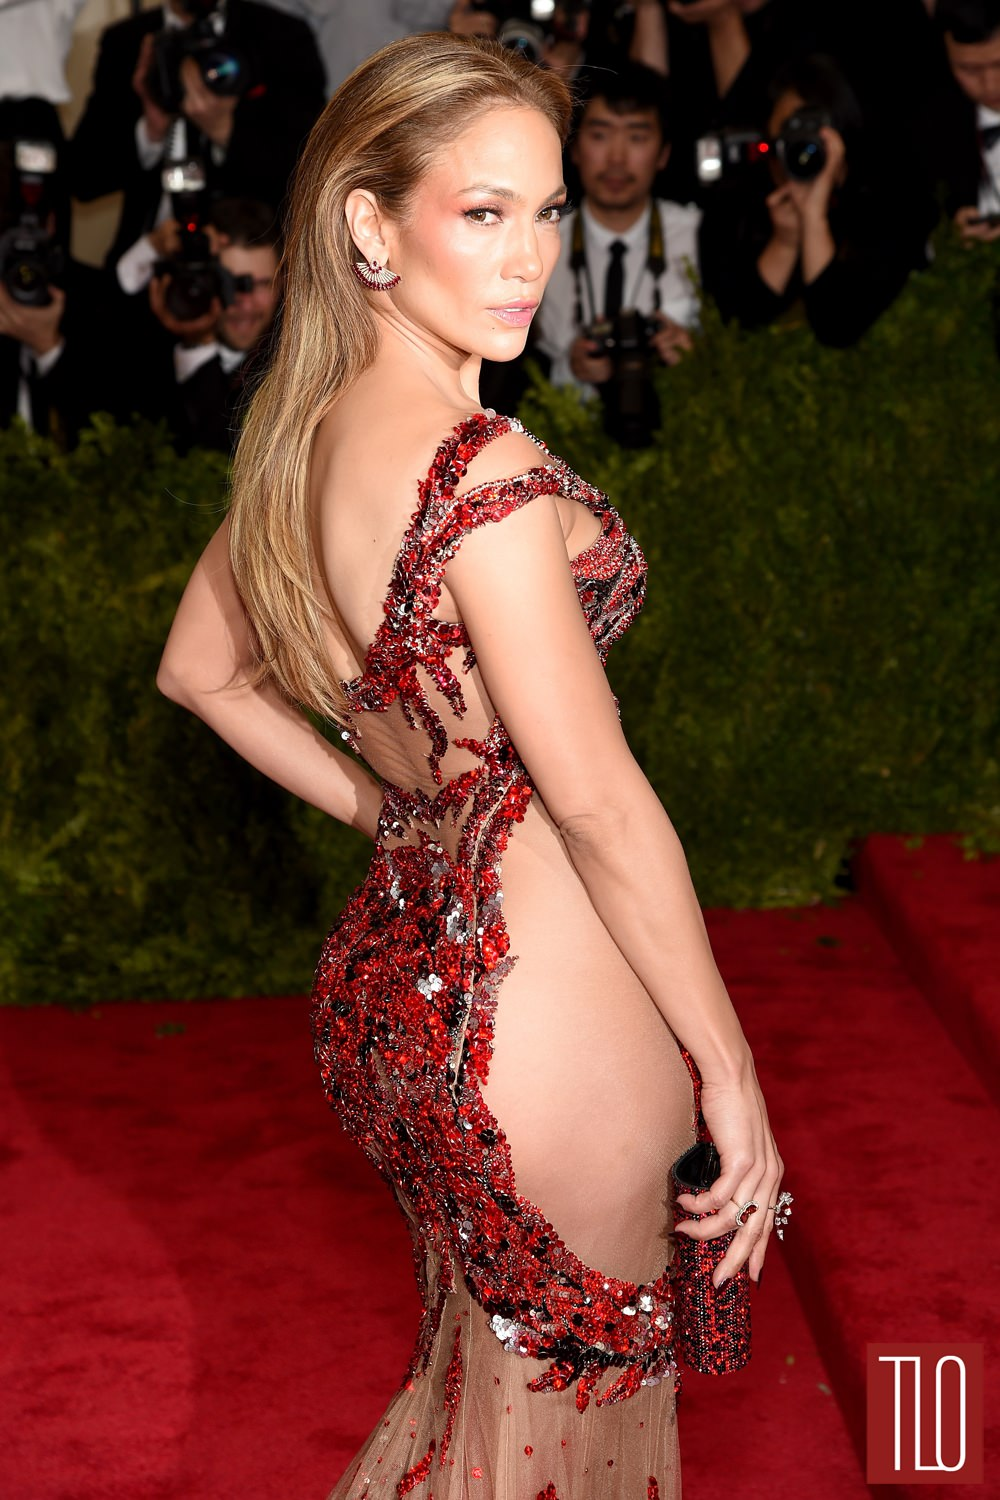 Jennifer-Lopez-2015-Met-Gala-Red-Carpet-Fashion-Atelier-Versace-Tom-Lorenzo-Site-TLO (1)